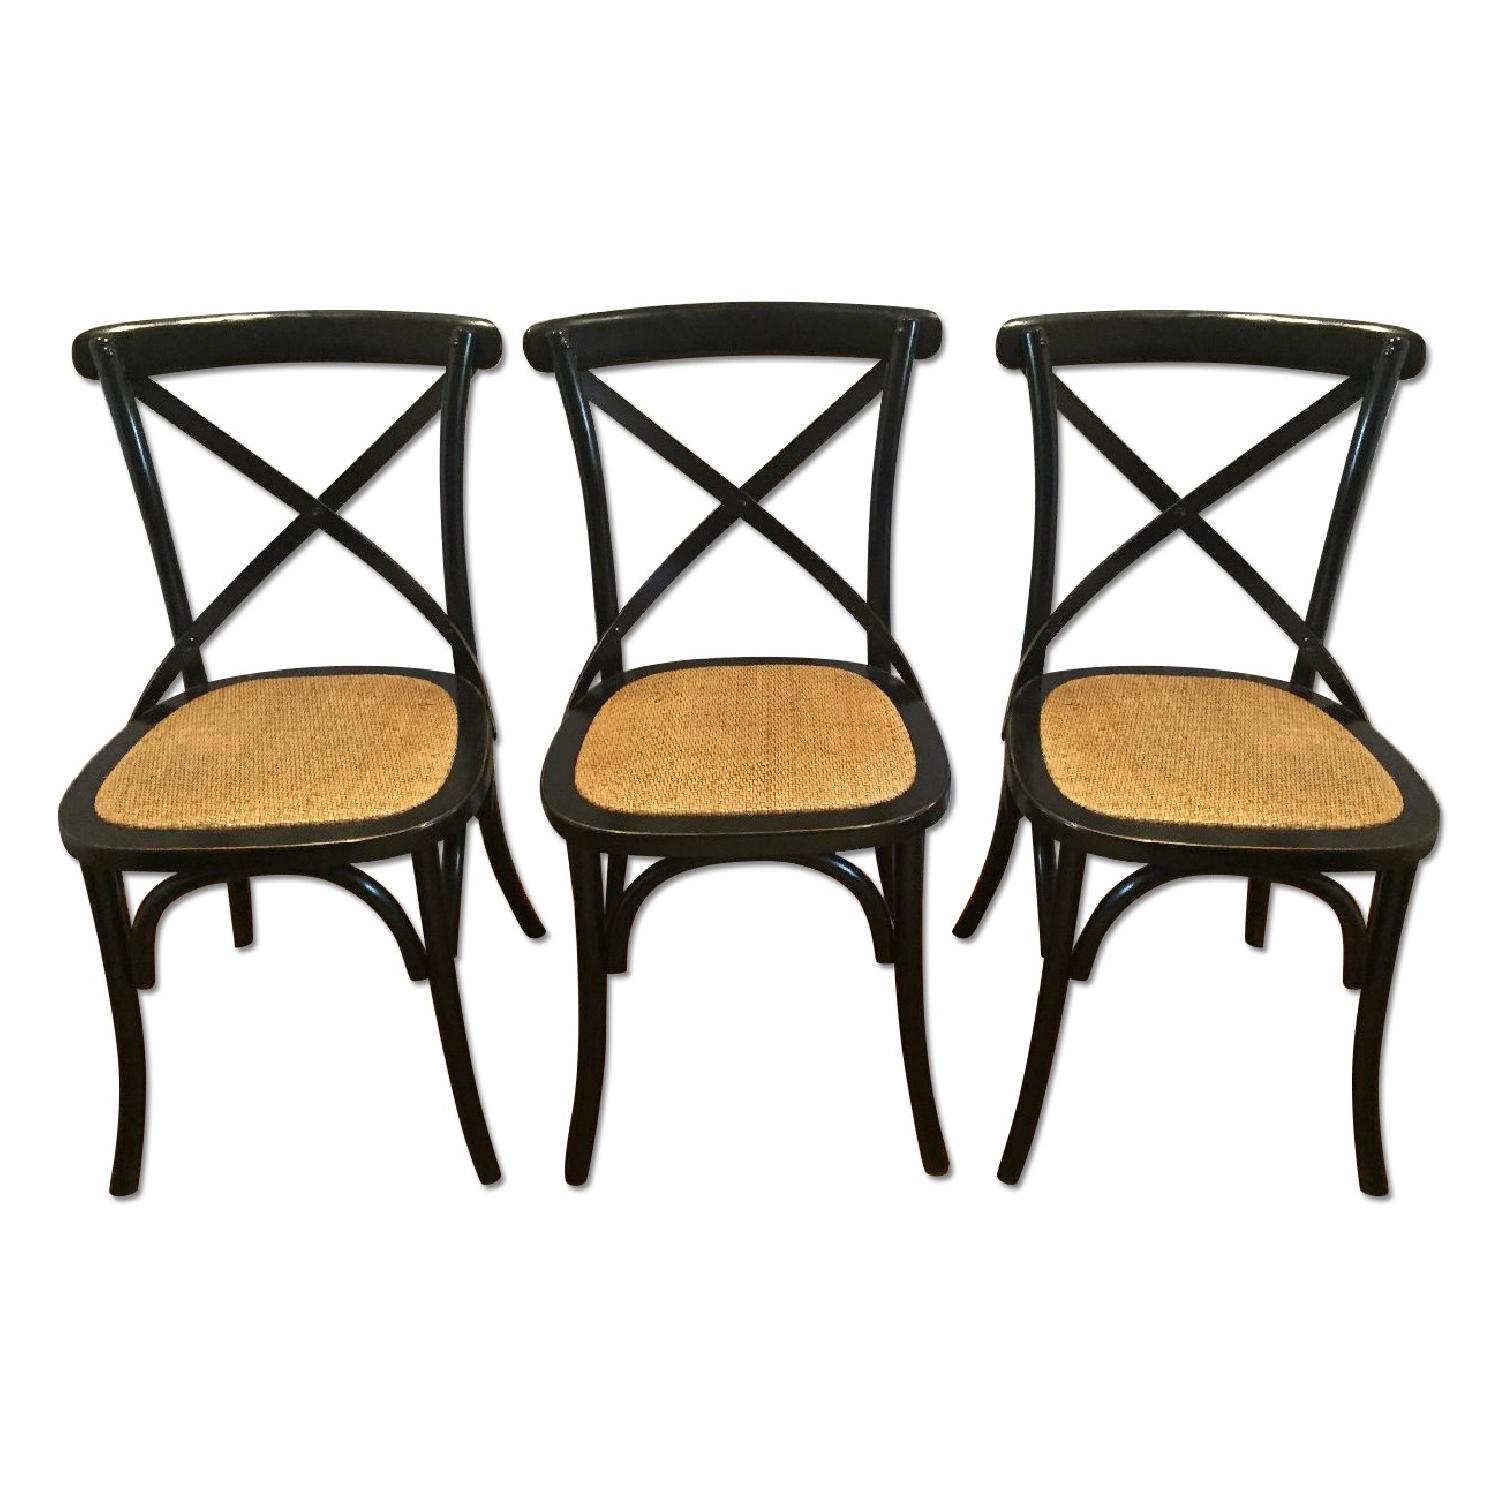 Bistro Dining Room Chairs - image-0